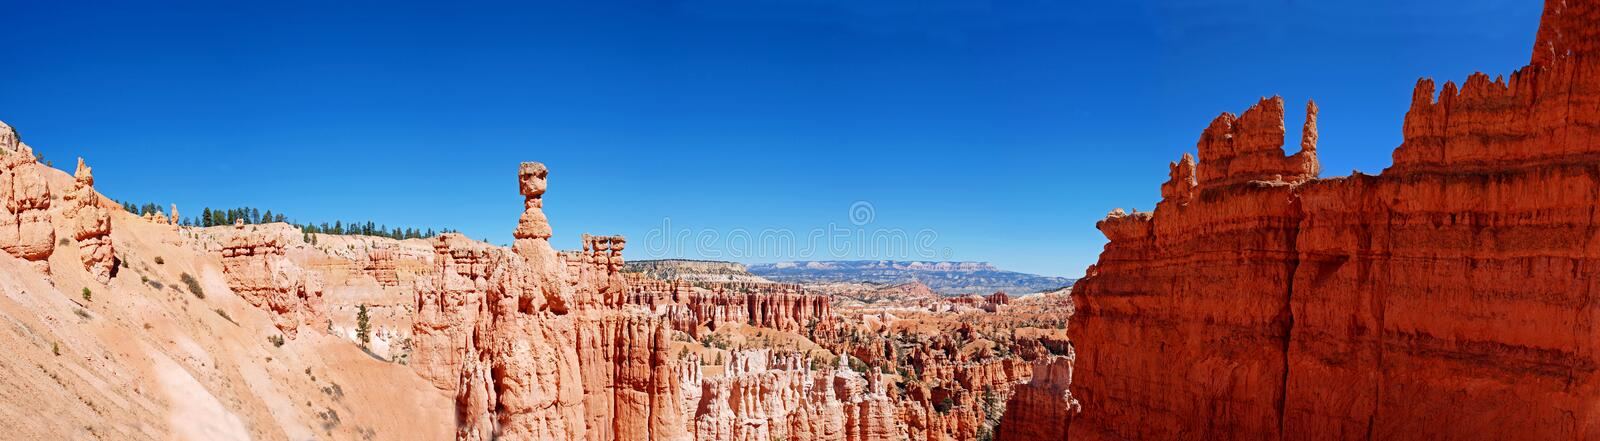 Panorama of amphitheatre in Bryce Canyon, Utah royalty free stock photos